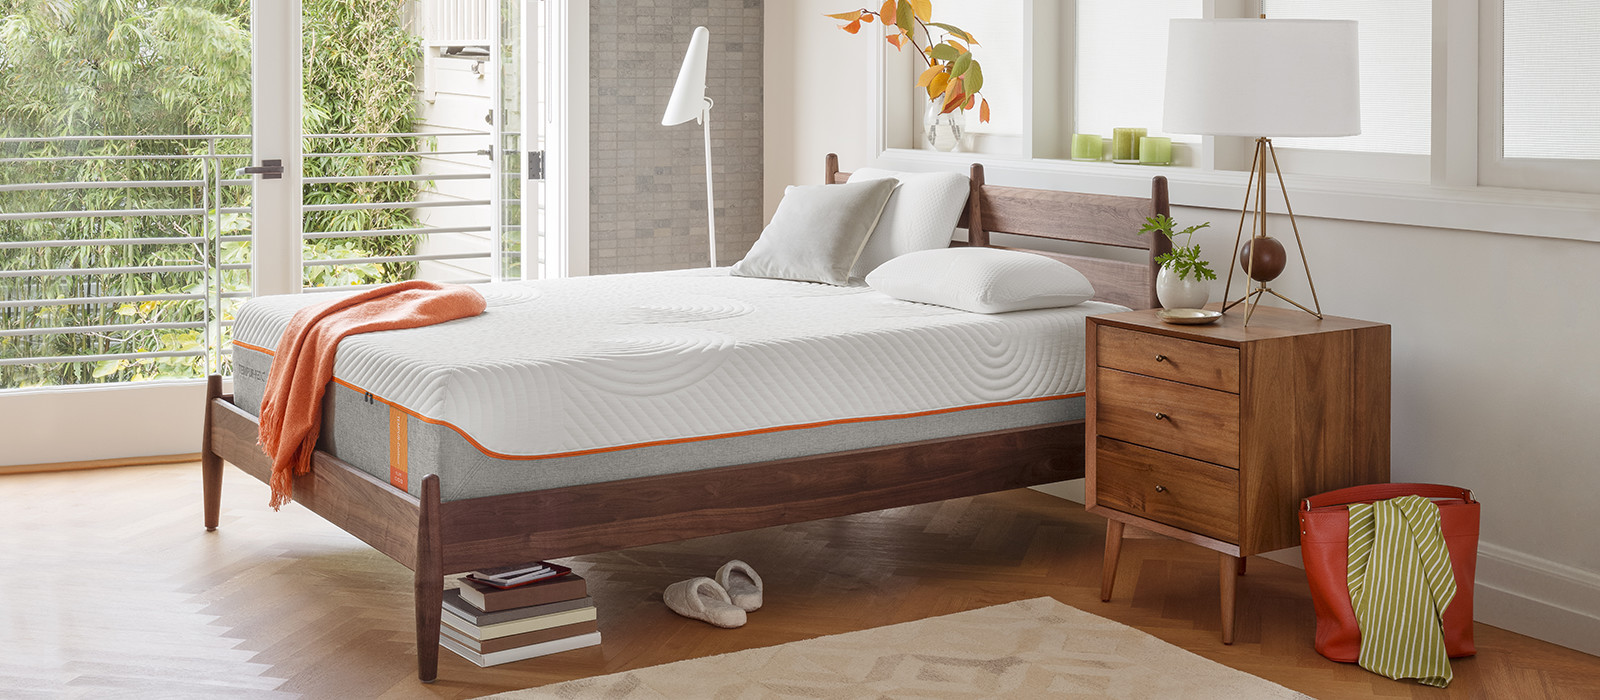 Tempur Contour Elite Mattress Tempur Pedic